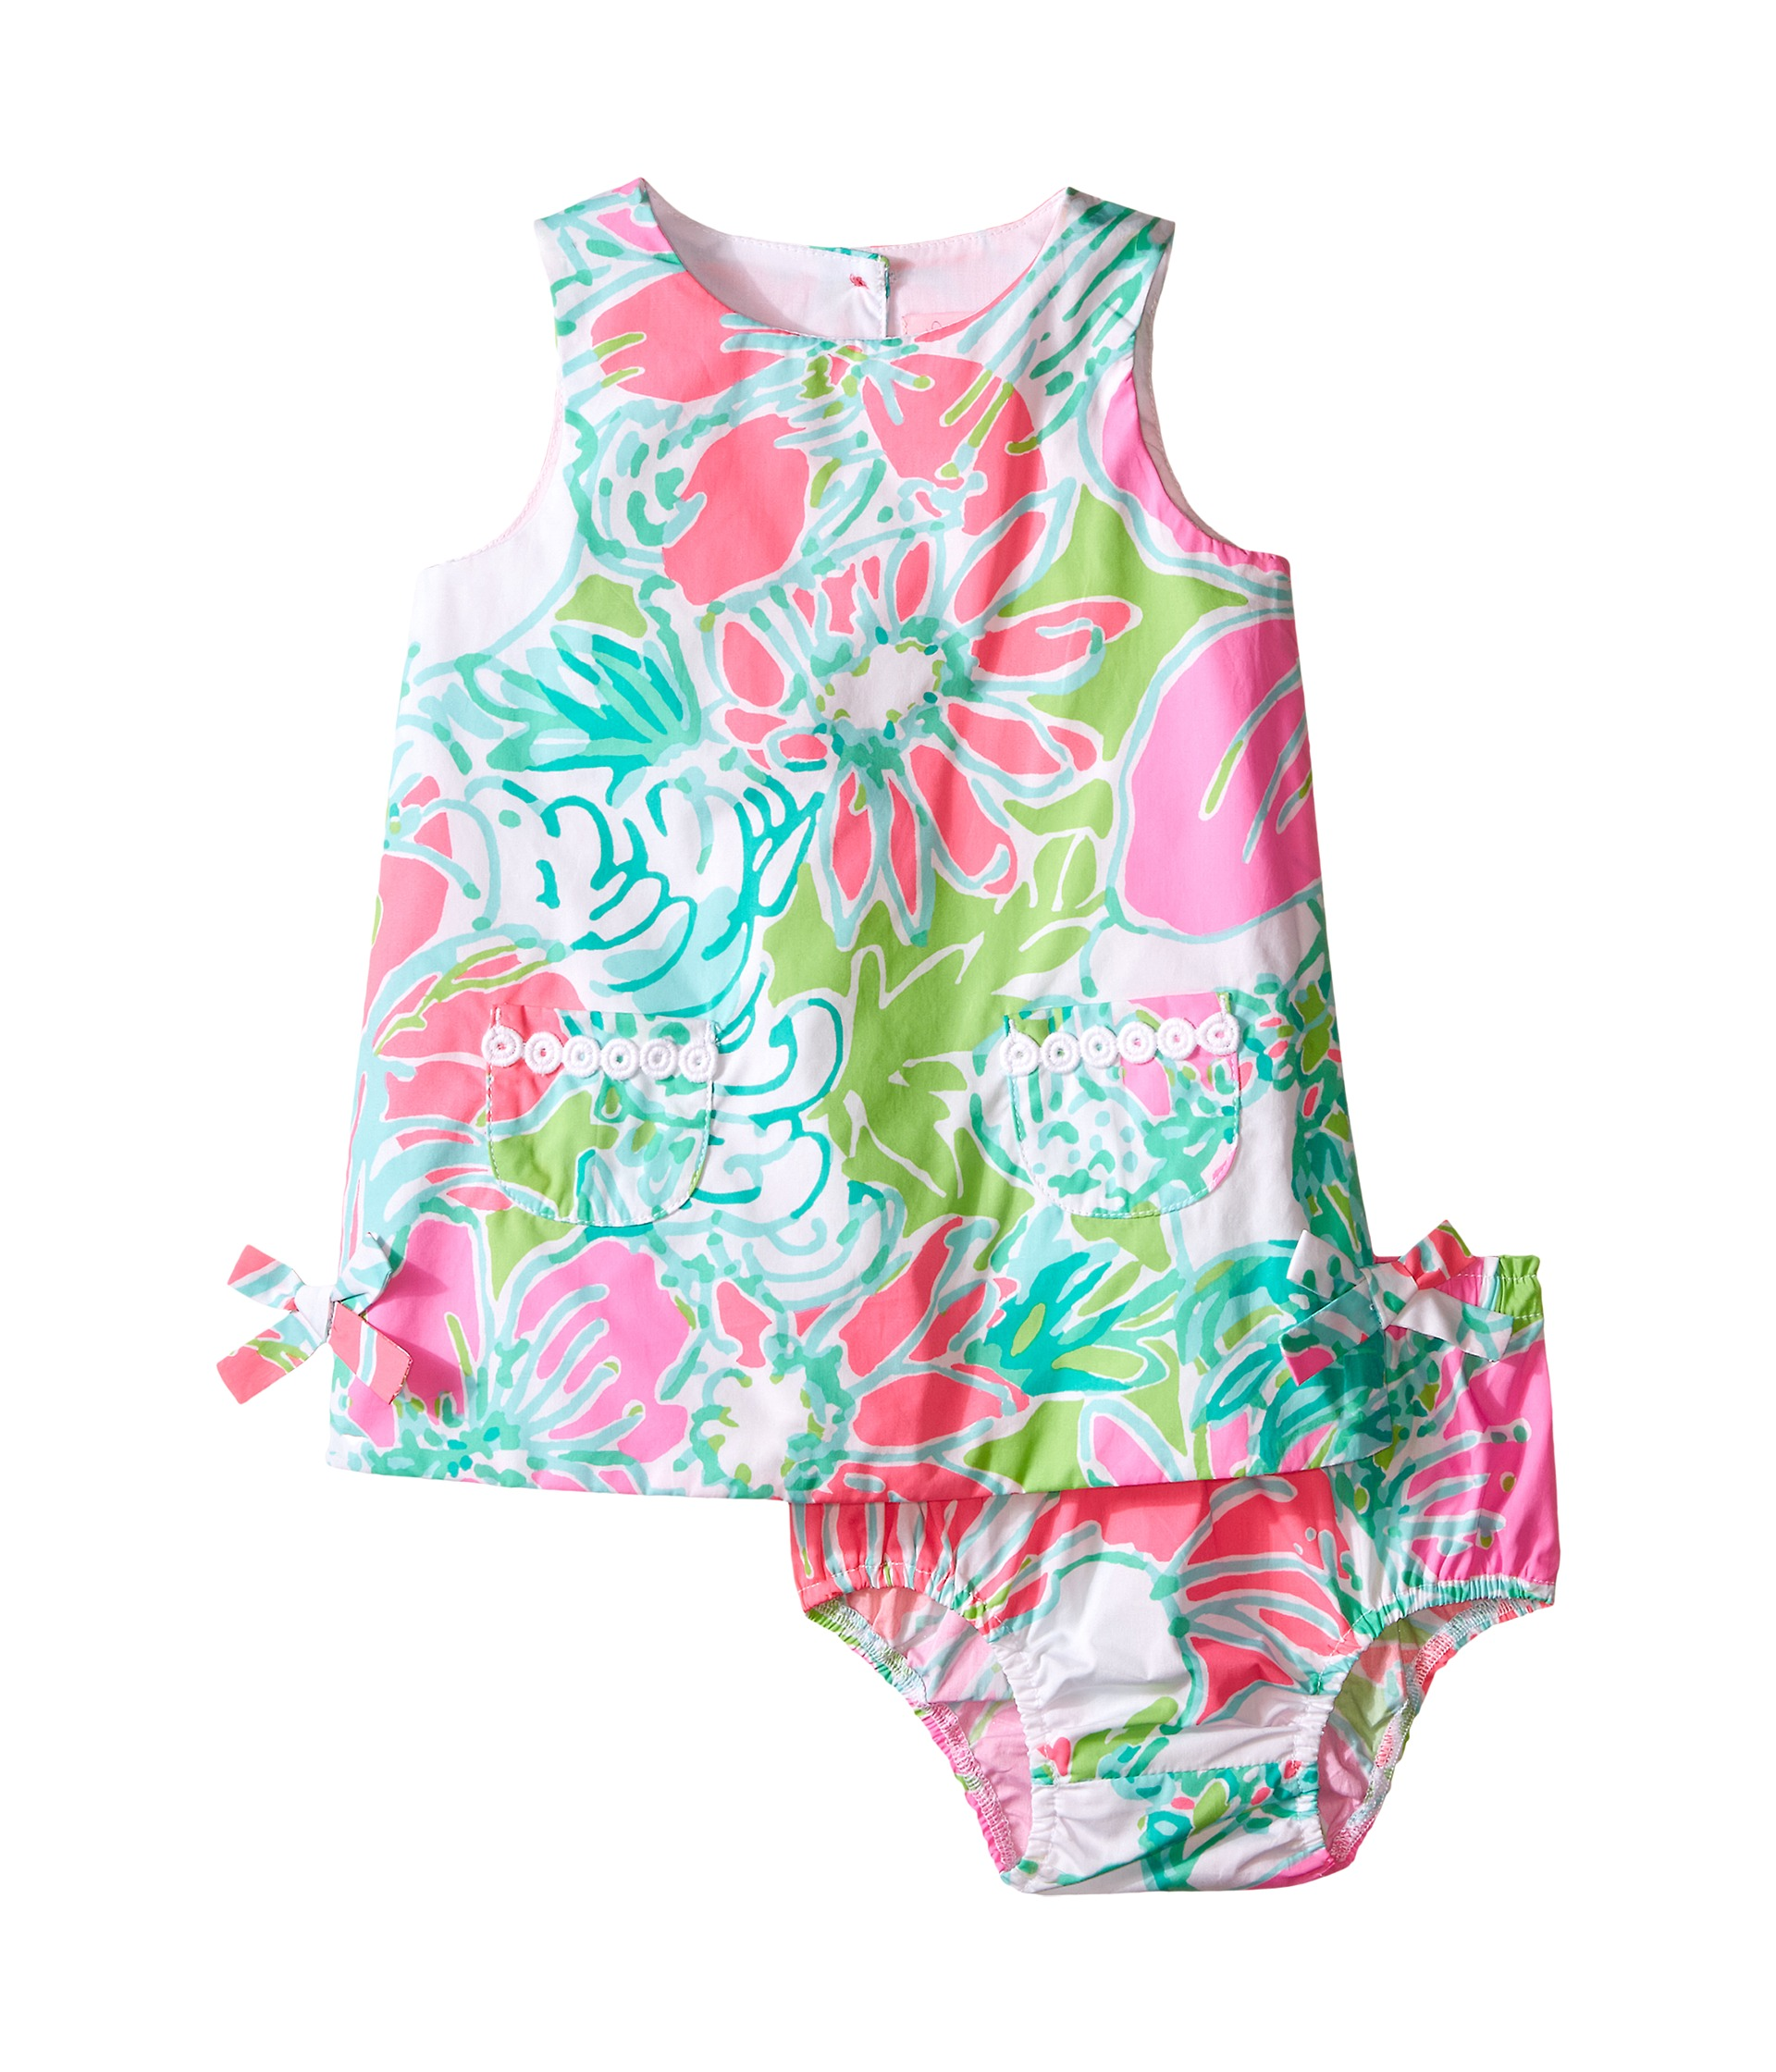 Lilly Pulitzer Kids Lilly Shift Infant Flamingo Pink